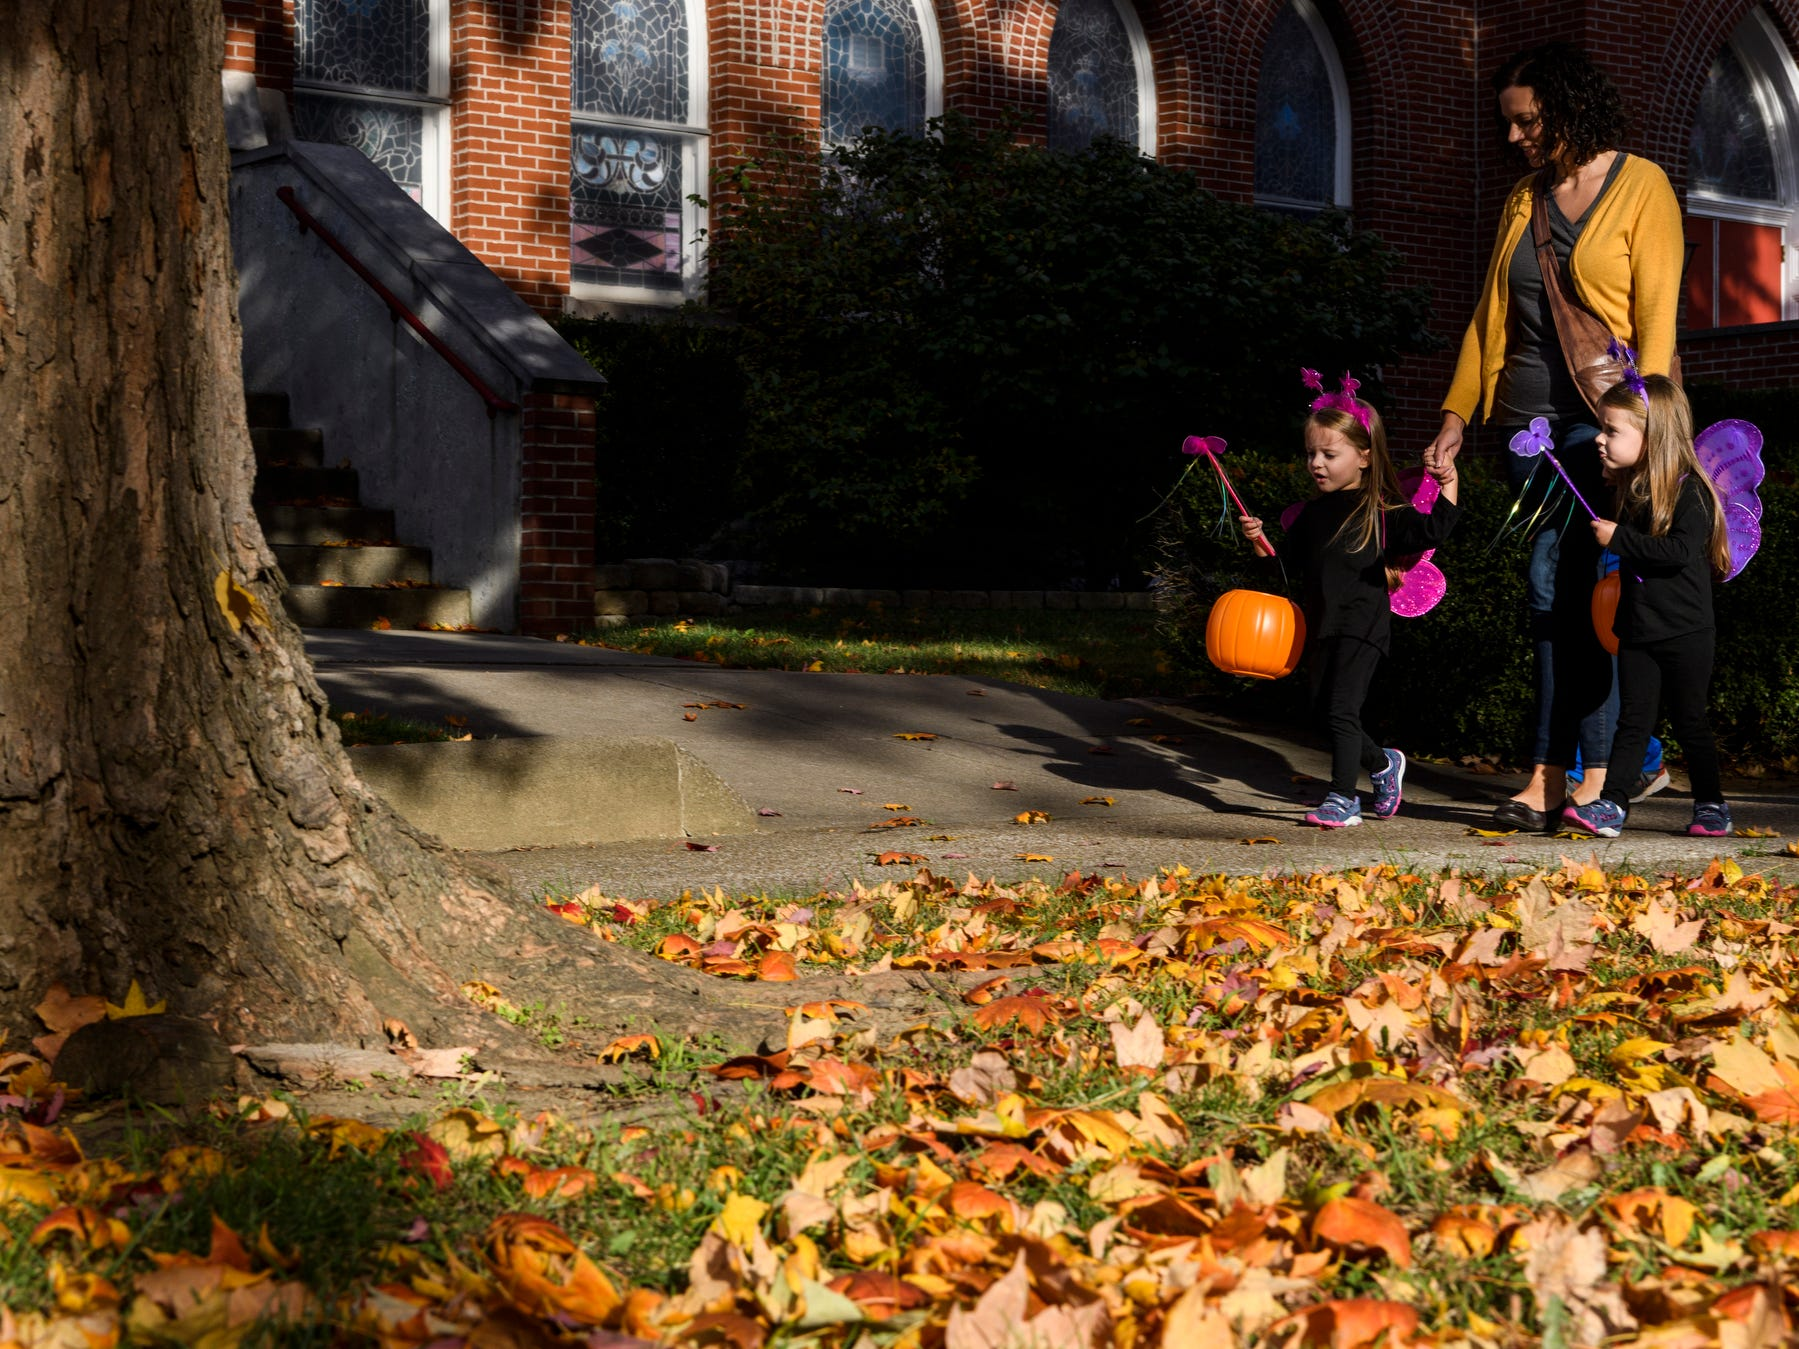 Twin sisters Emily Clutts, left, and Nora Clutts, right, walk to the next candy stop with their mother Mary Clutts, during the Trick-or-Treat event in downtown Henderson, Ky., Tuesday, Oct. 30, 2018.